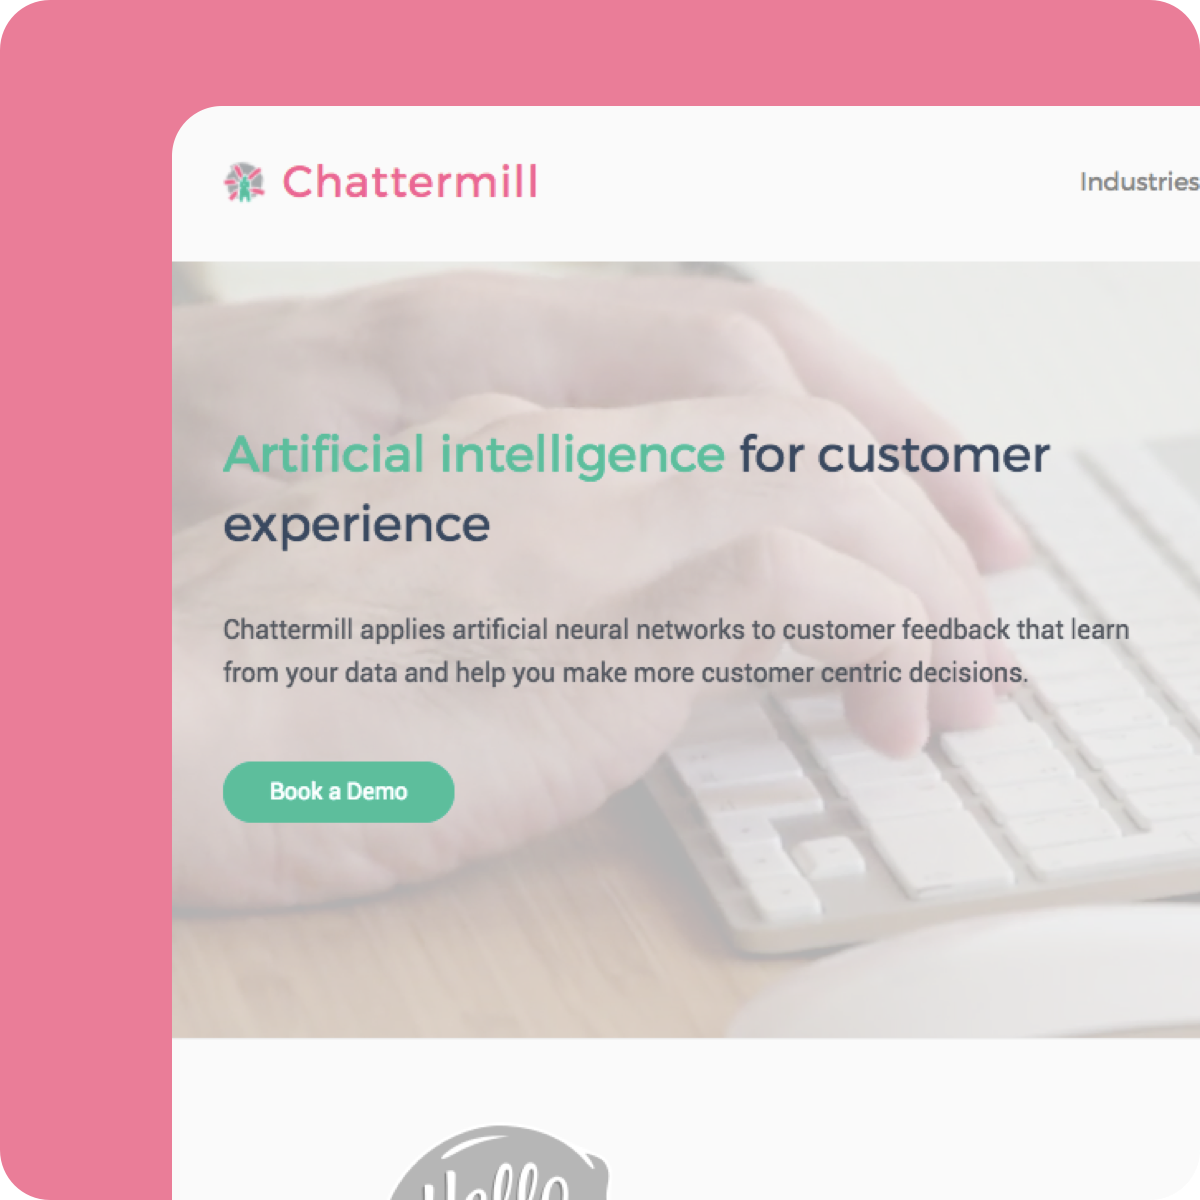 Provides artificial intelligence for customer experiences by applying artificial neural networks to customer feedback